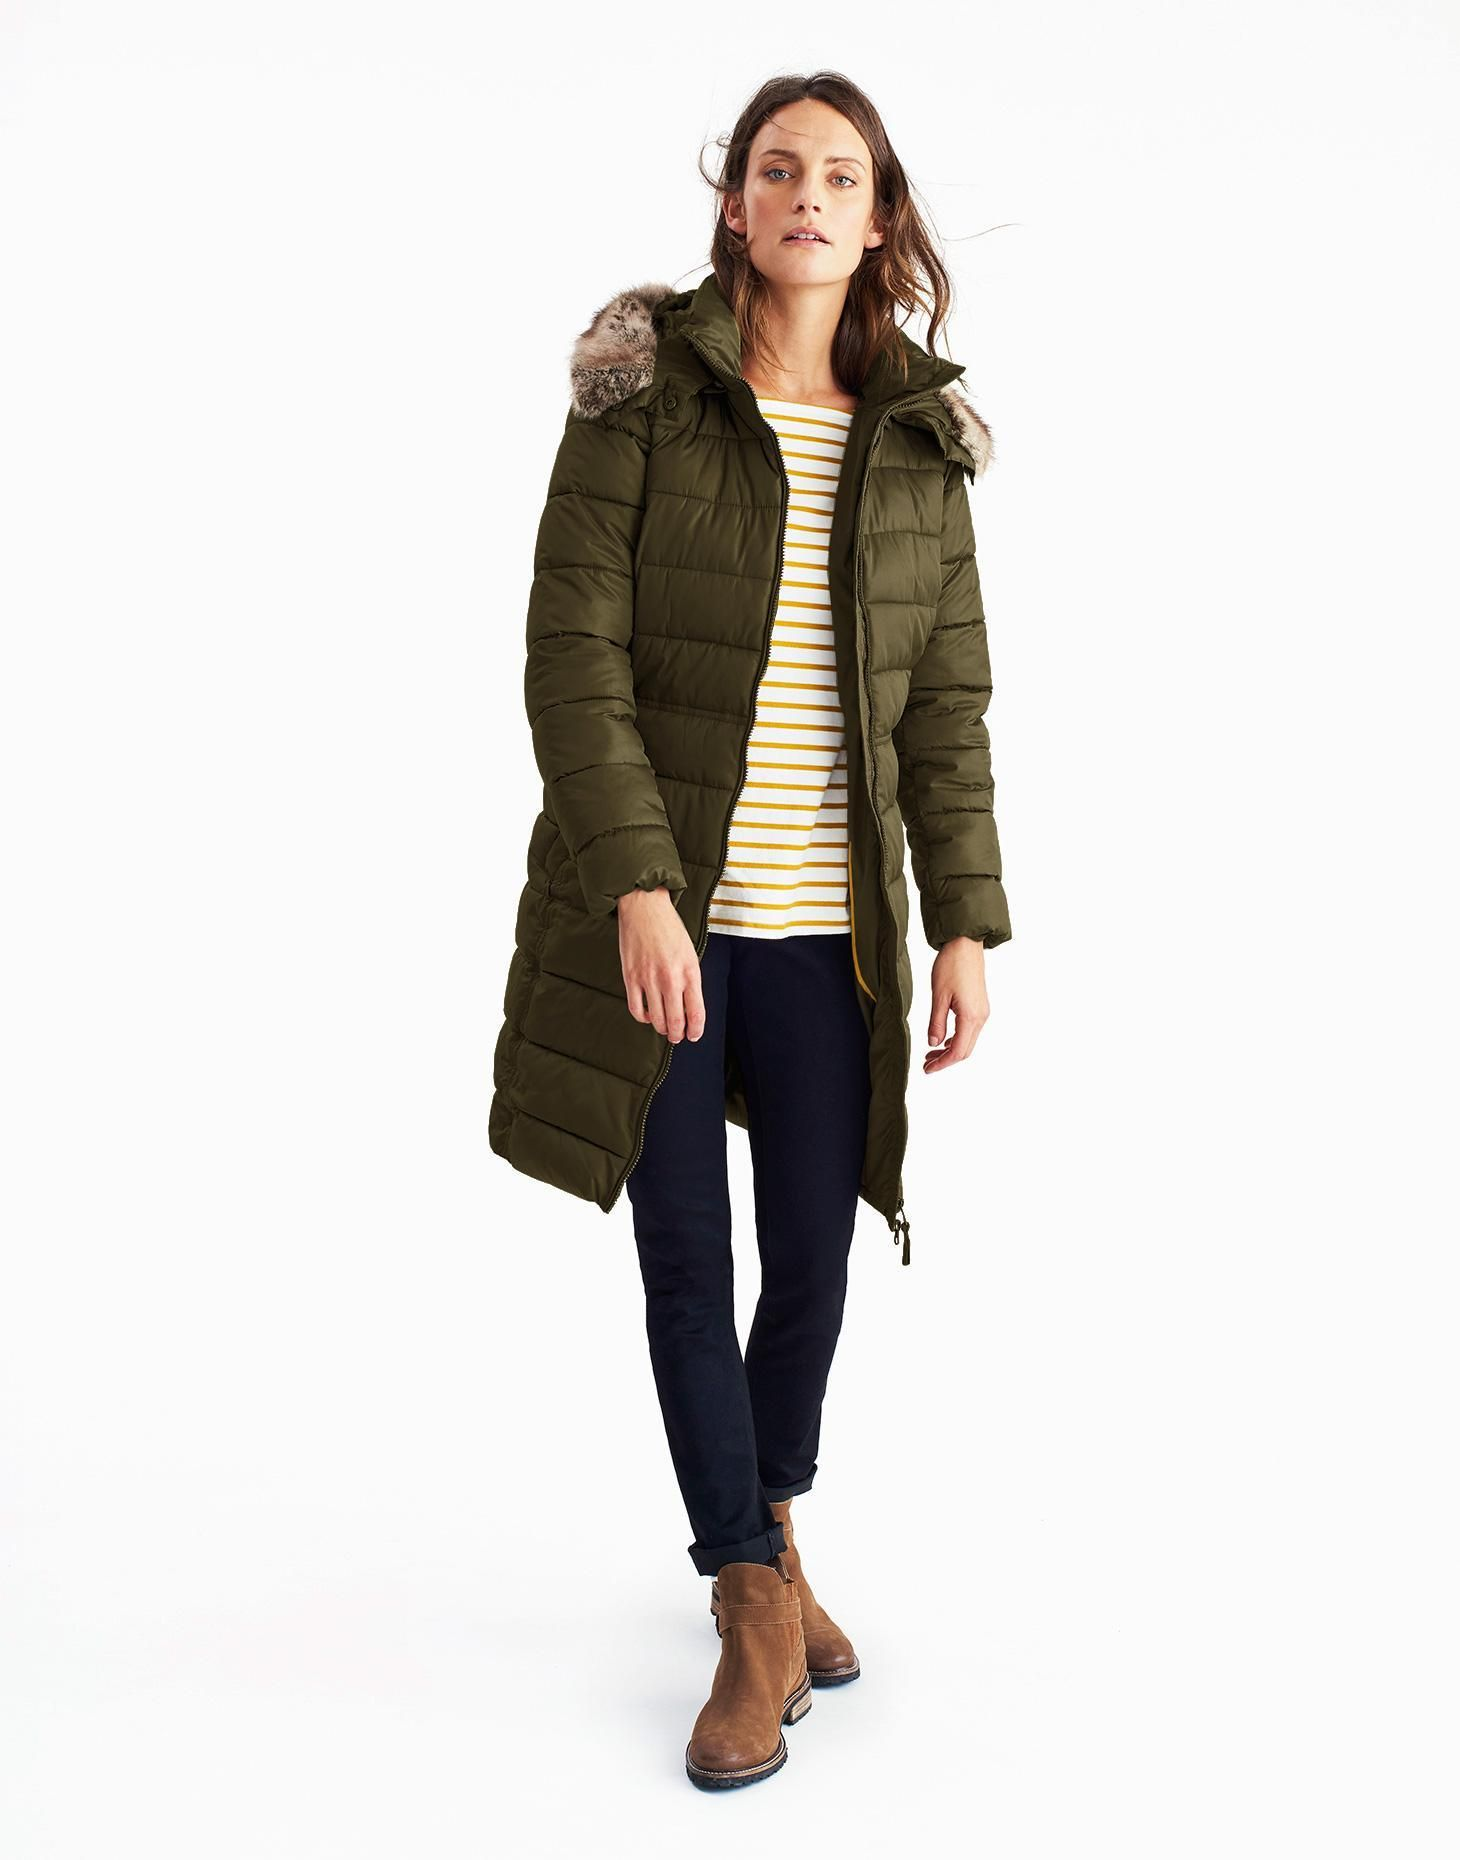 Snowdon Woodland Green Padded Jacket | Joules UK | My style ... : joules green quilted jacket - Adamdwight.com